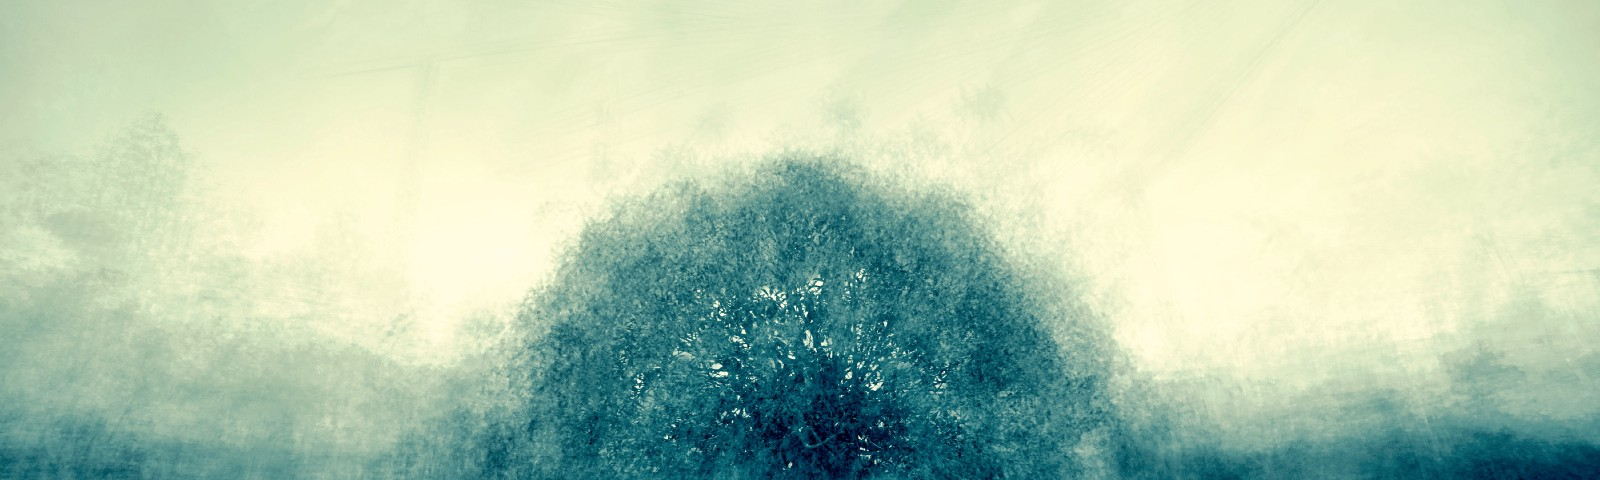 Fuzzy image of a green blue tree against a gray sky